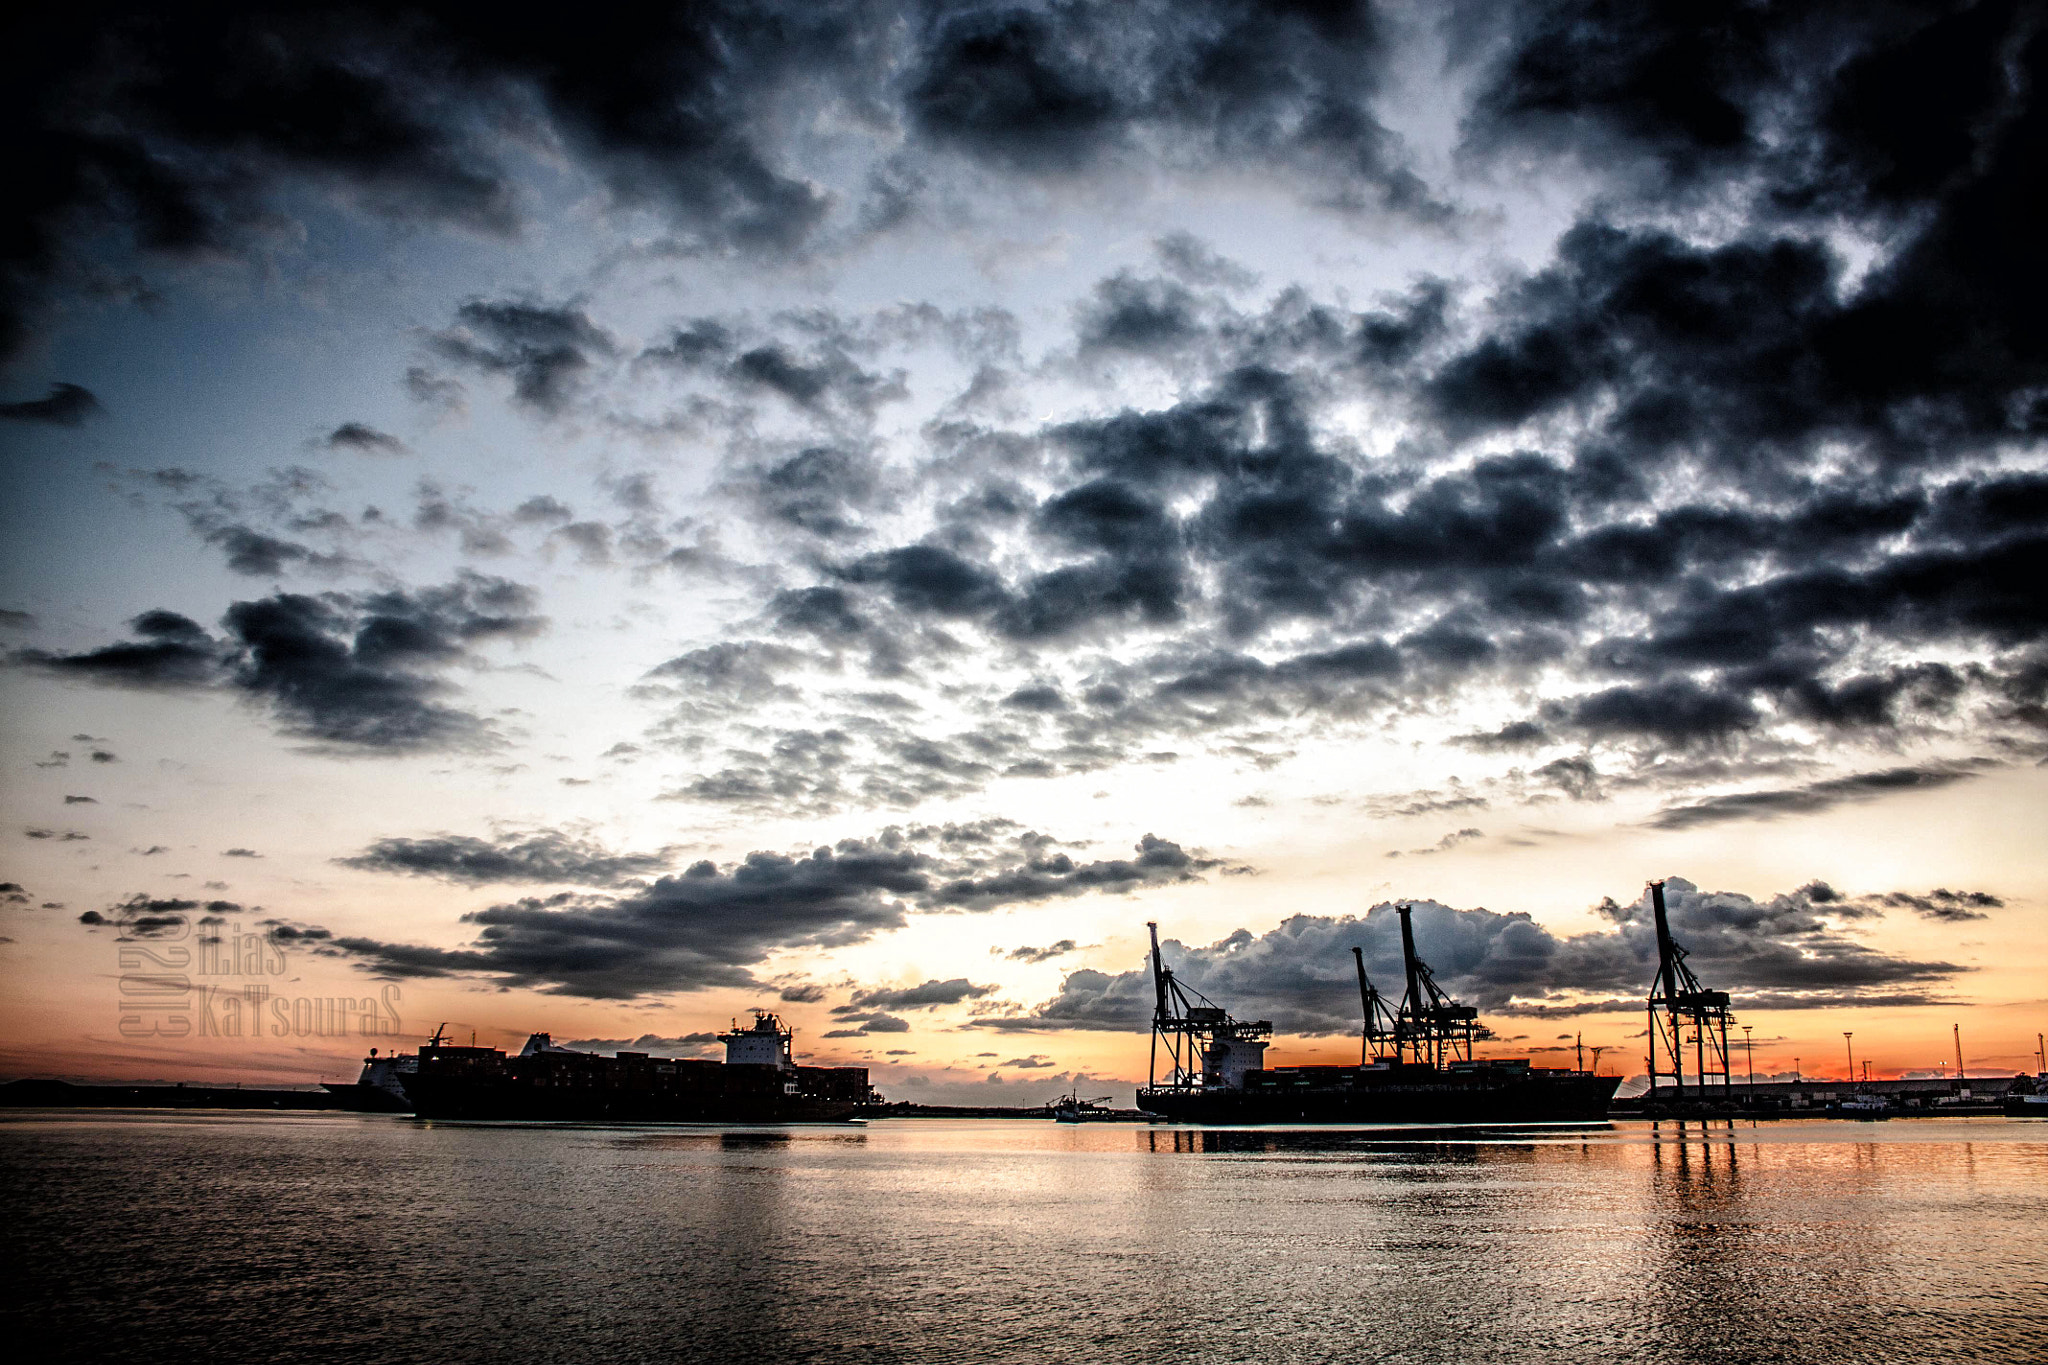 Photograph One more from the port by Ilias Katsouras on 500px